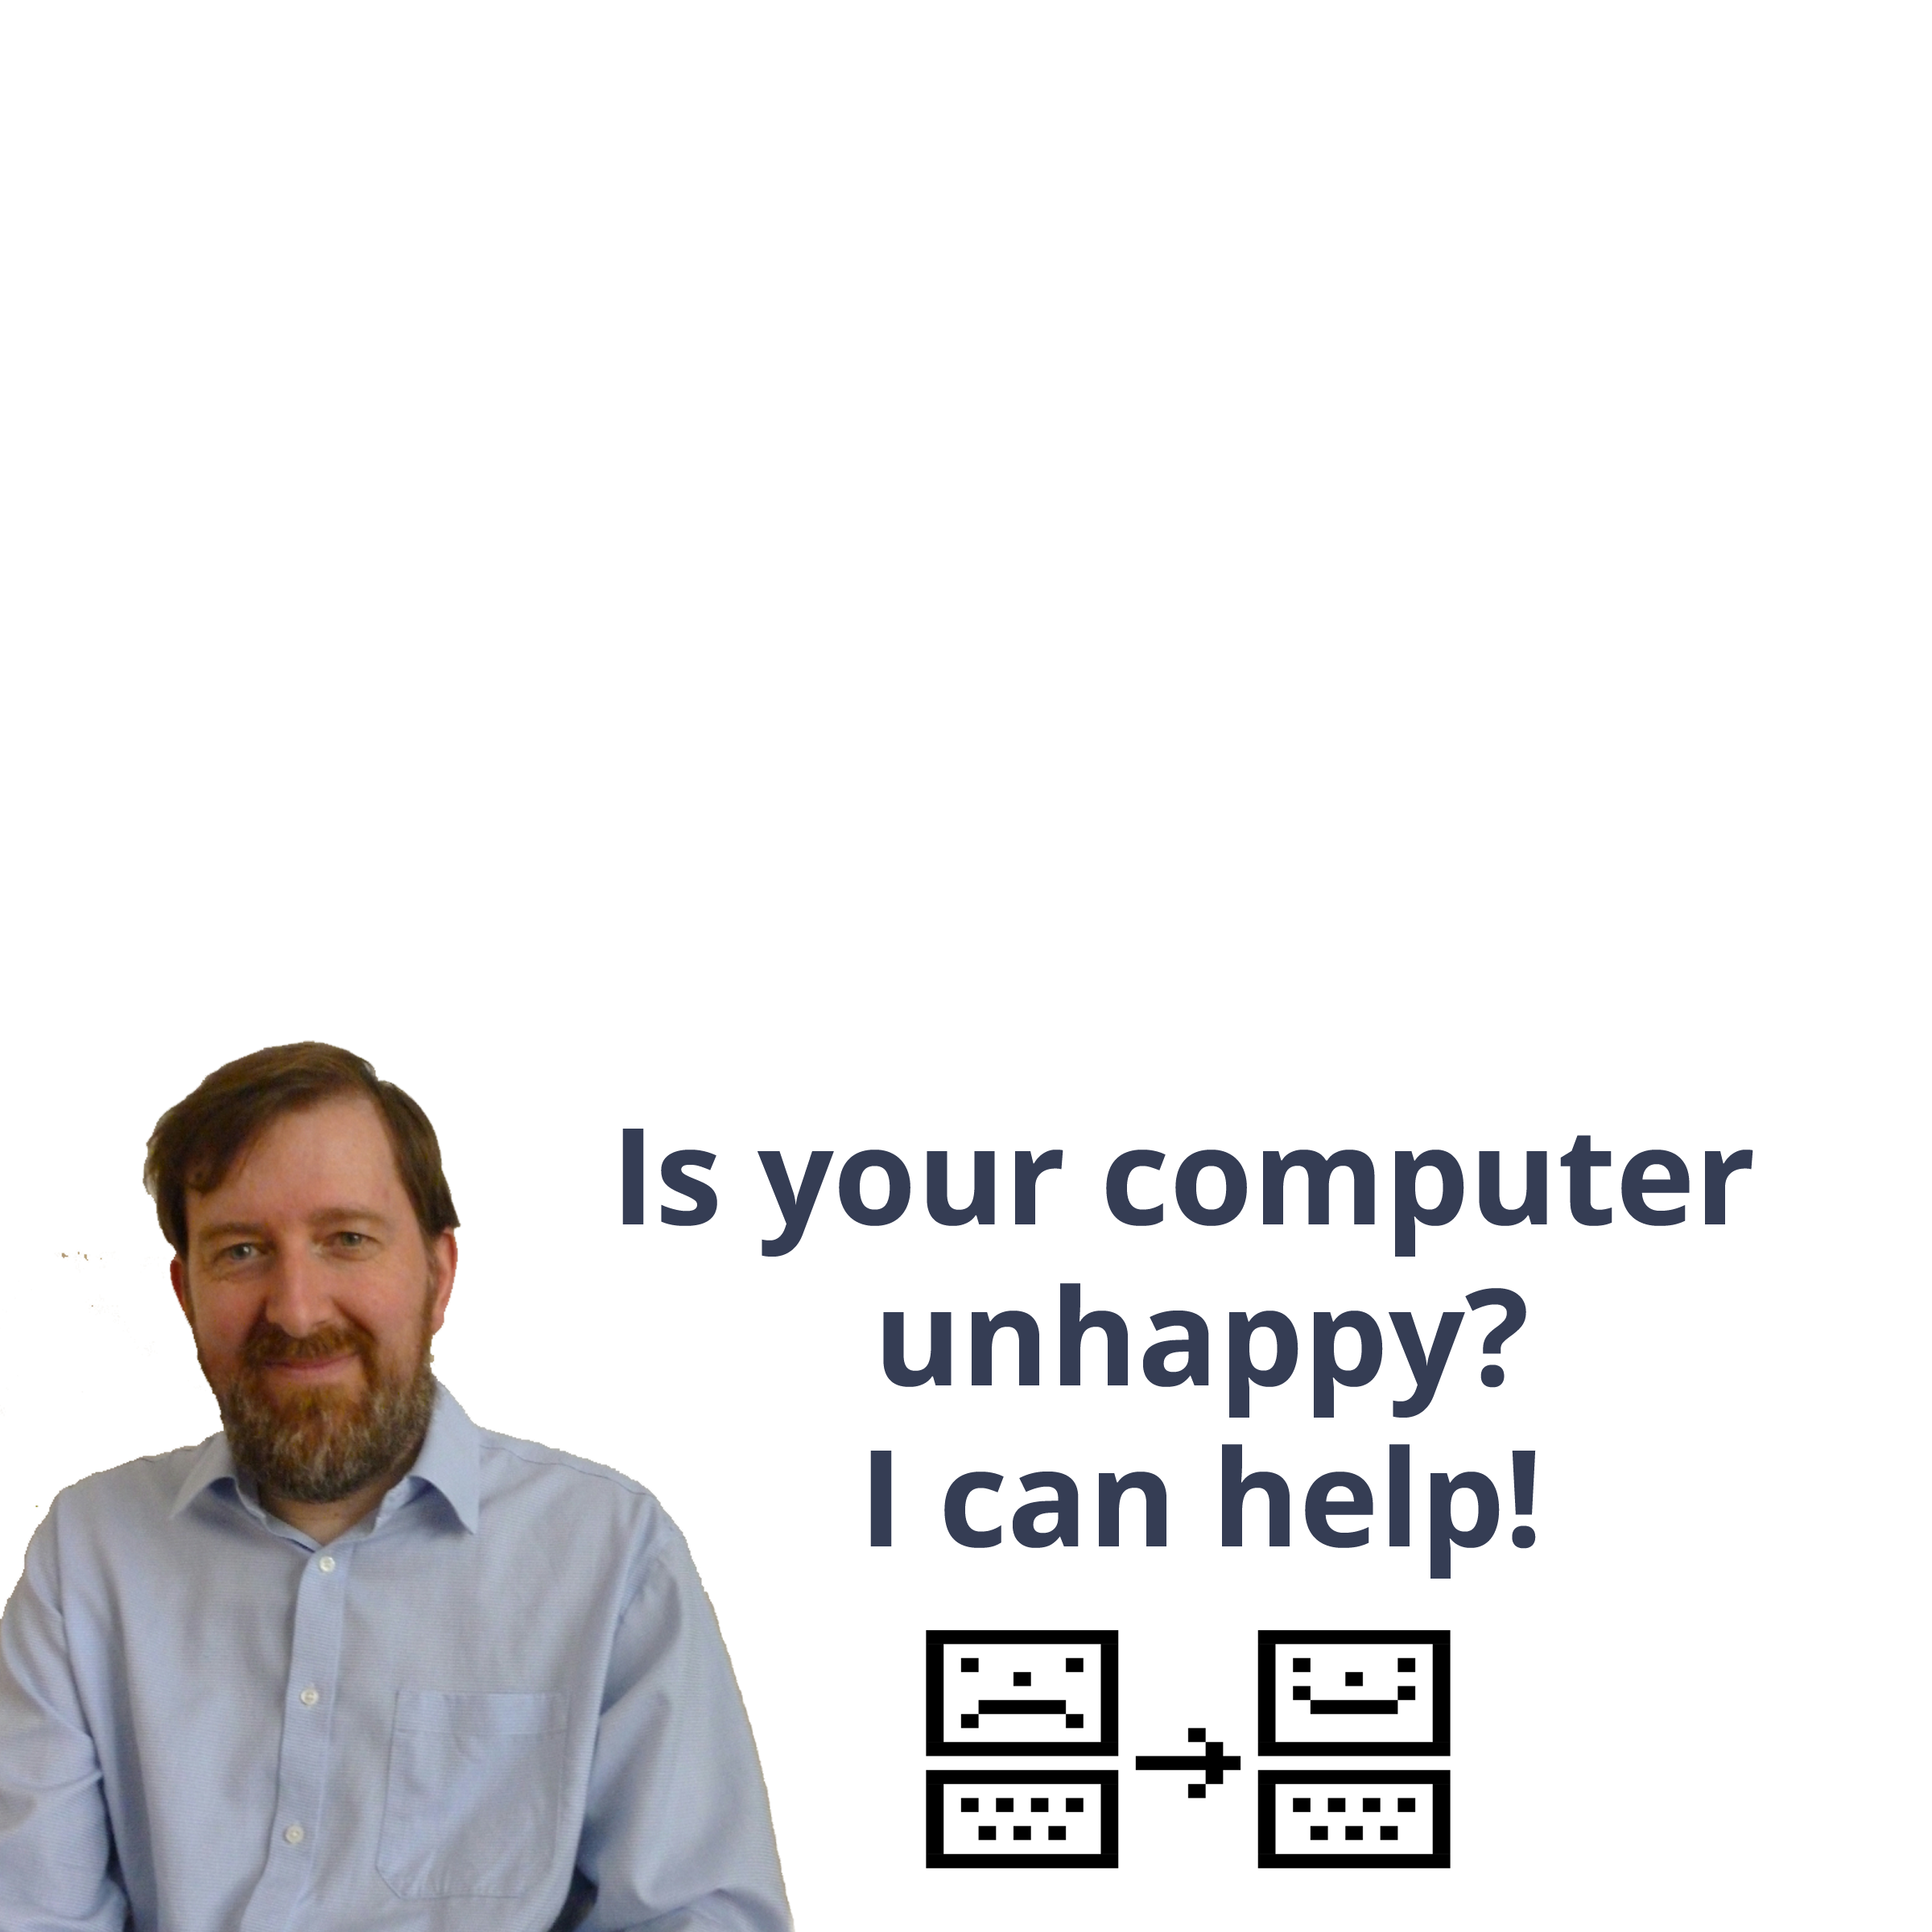 Jim Fernbank: Computer support in London